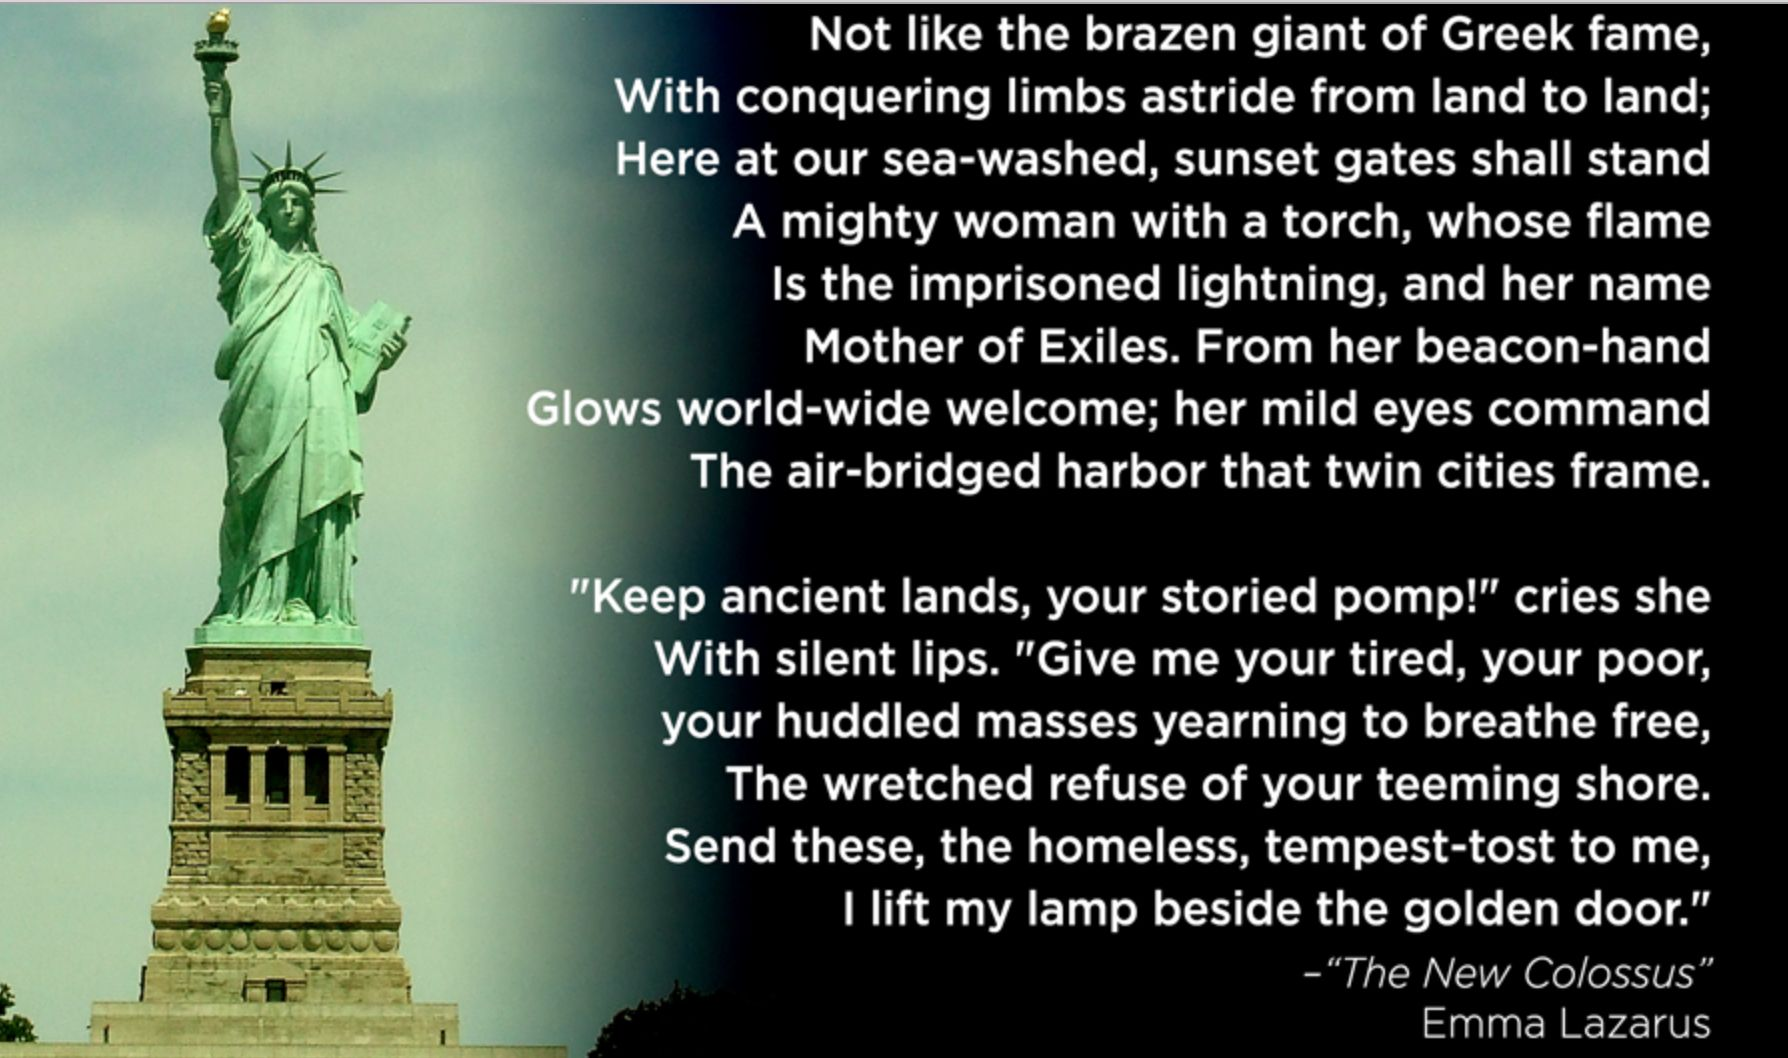 I Lift My Lamp Beside The Golden Door. ~Emma Lazarus